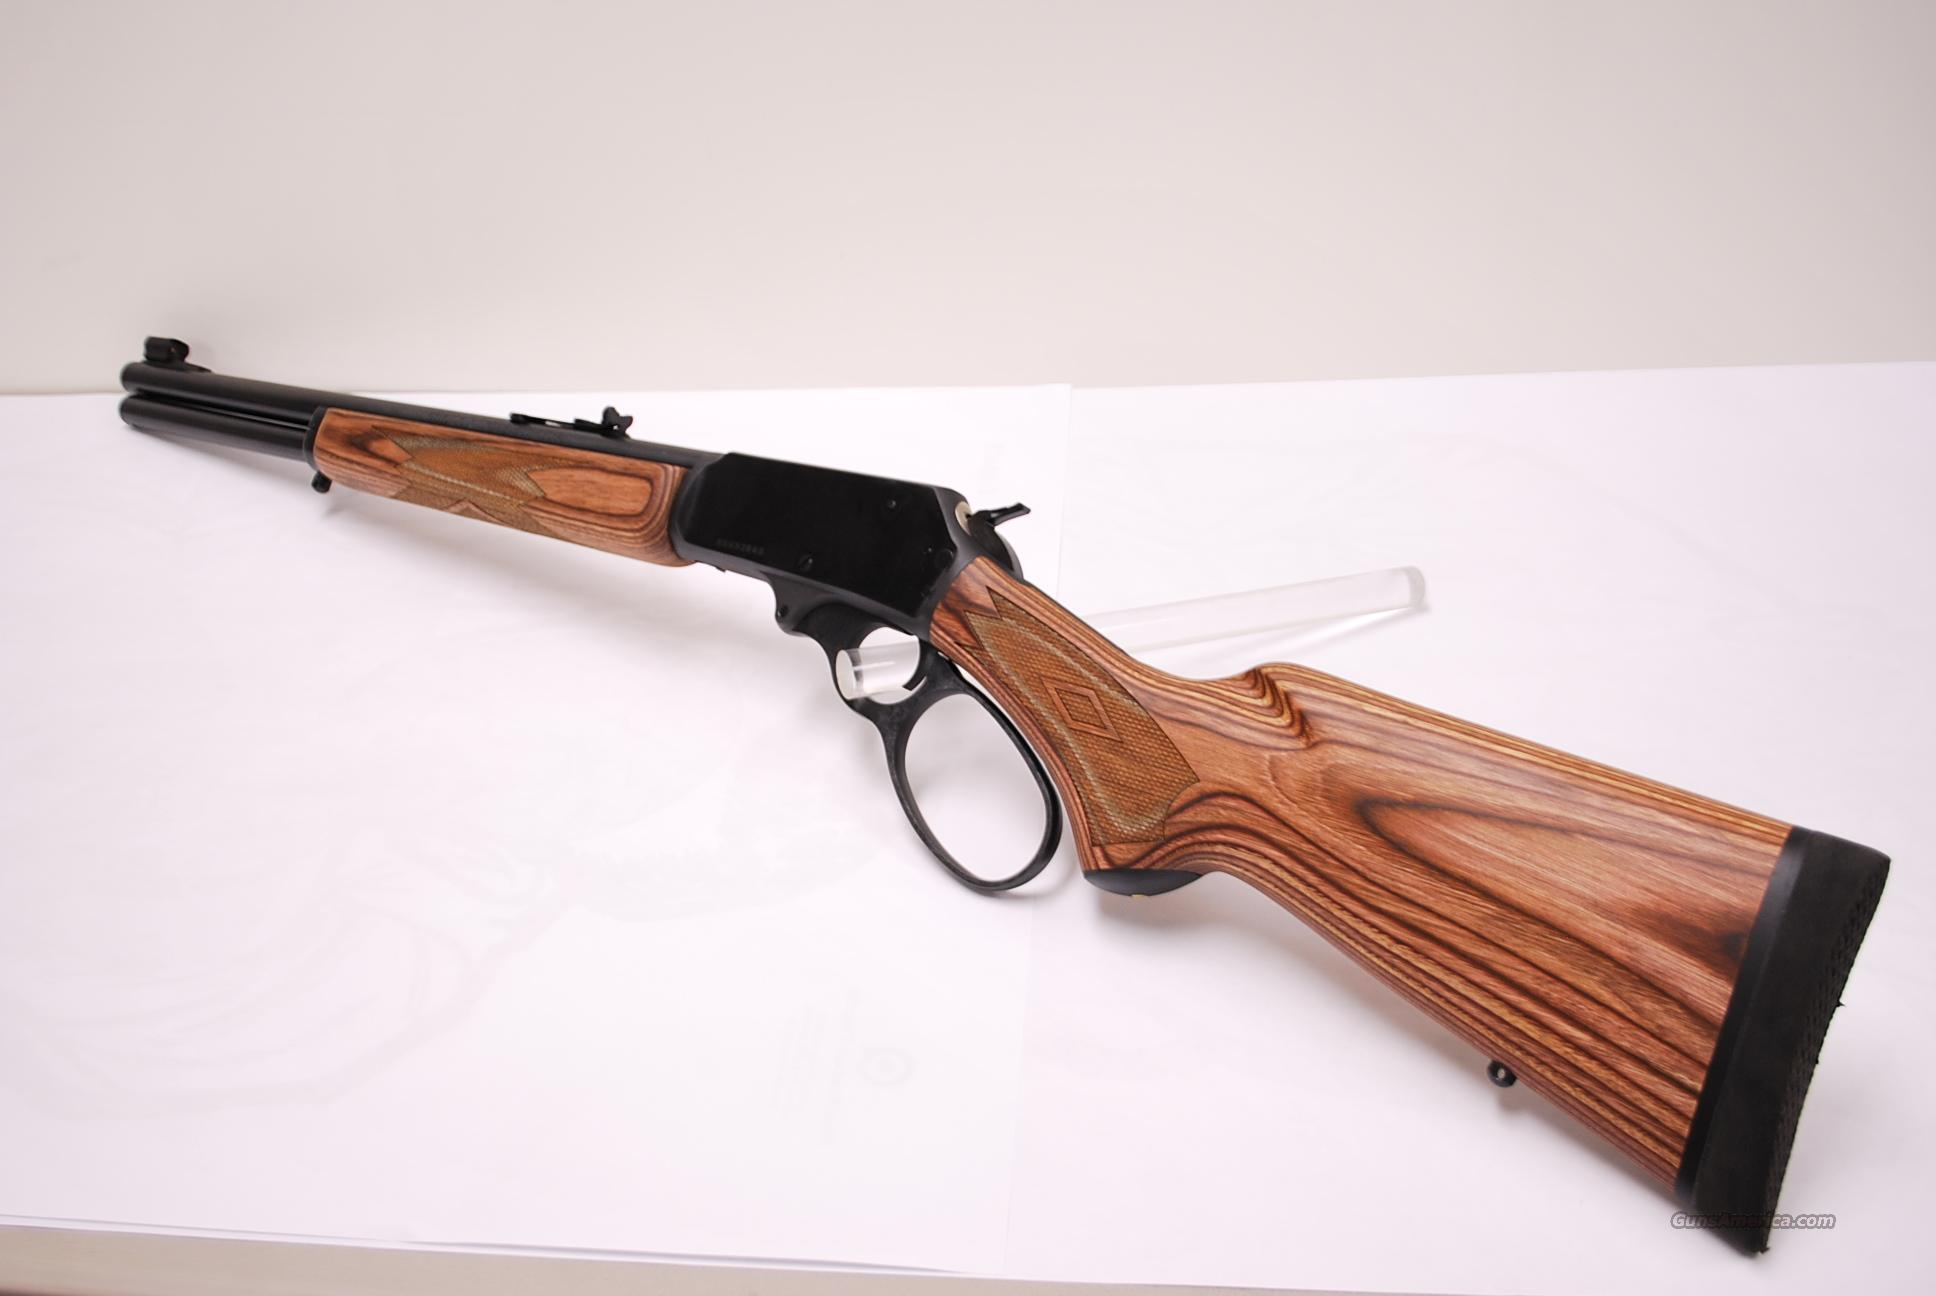 Marlin 1895 GBL 45-70 Govt., 18.5 inch barrel Big Loop Lever  Guns > Rifles > Marlin Rifles > Modern > Lever Action